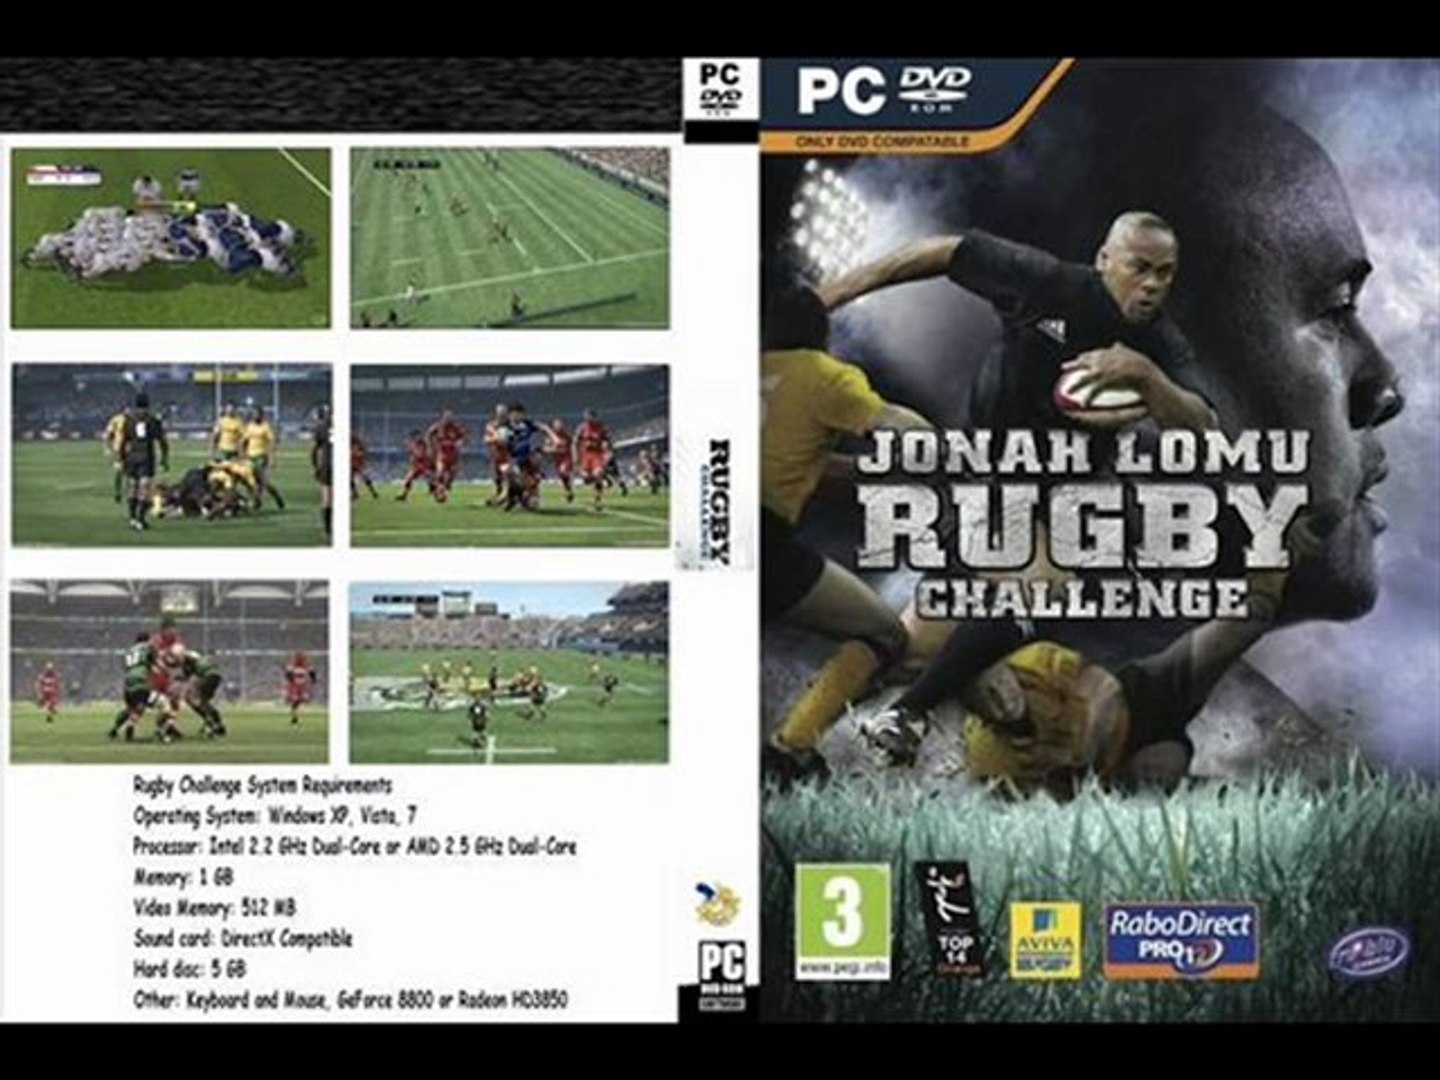 PATCH JONAH PS3 RUGBY TÉLÉCHARGER LOMU CHALLENGE